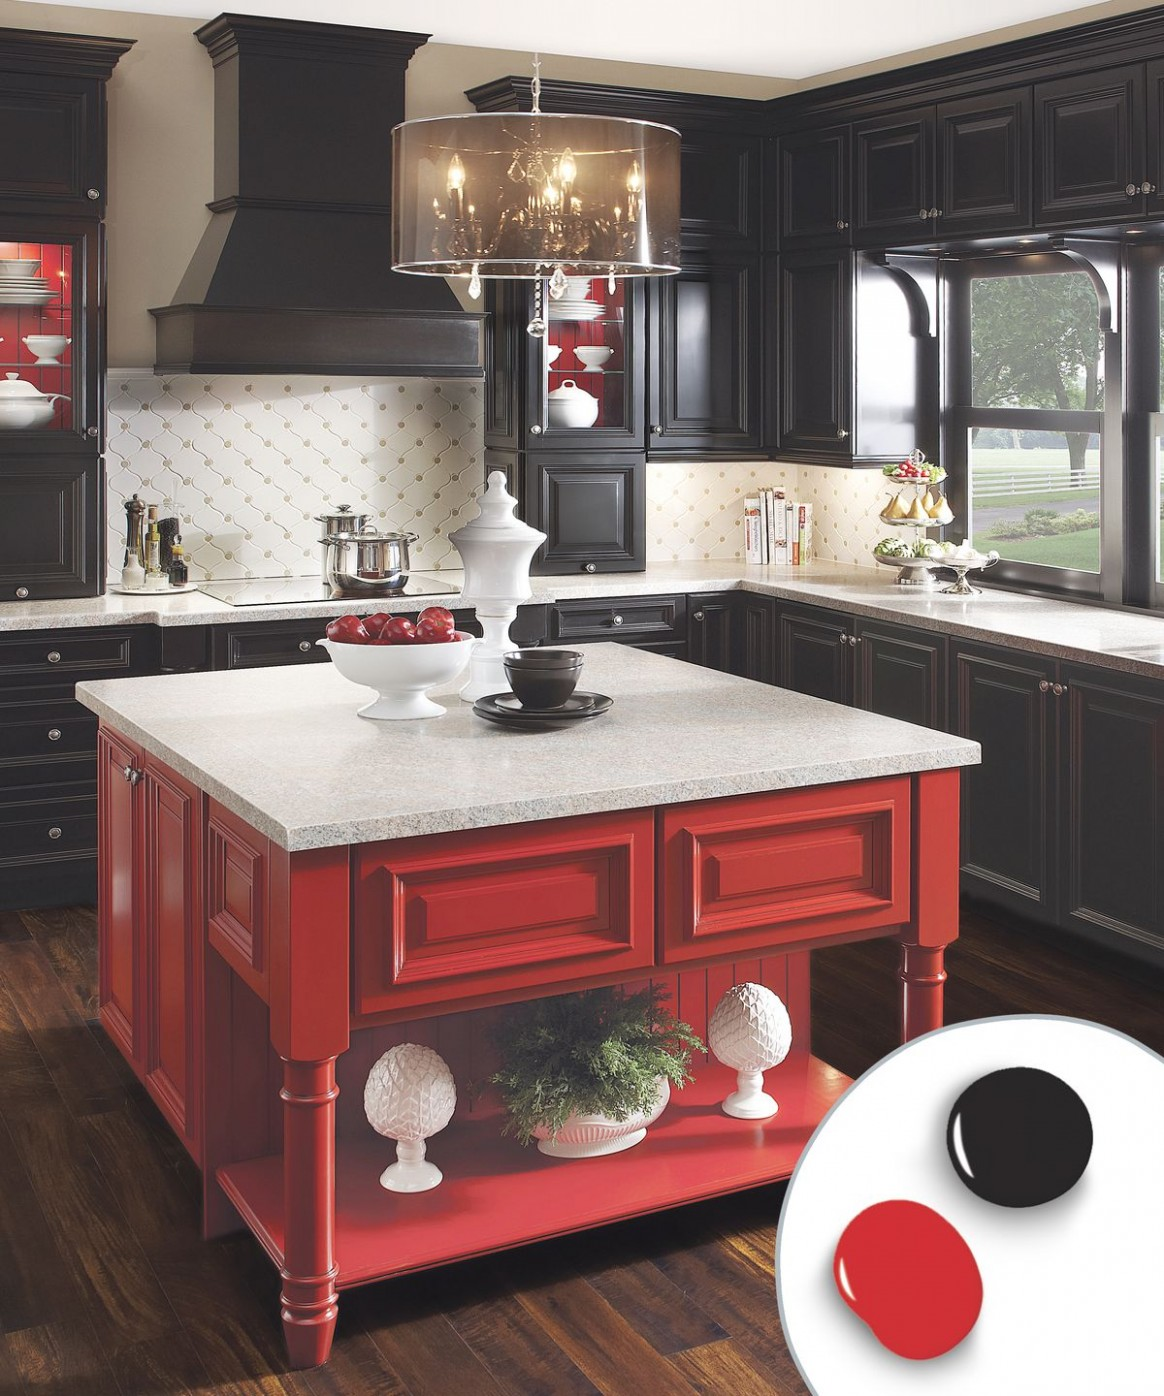 10 Kitchen Cabinet Color Ideas: Two-Tone Combinations - This Old House - Red Kitchen Walls With Dark Cabinets